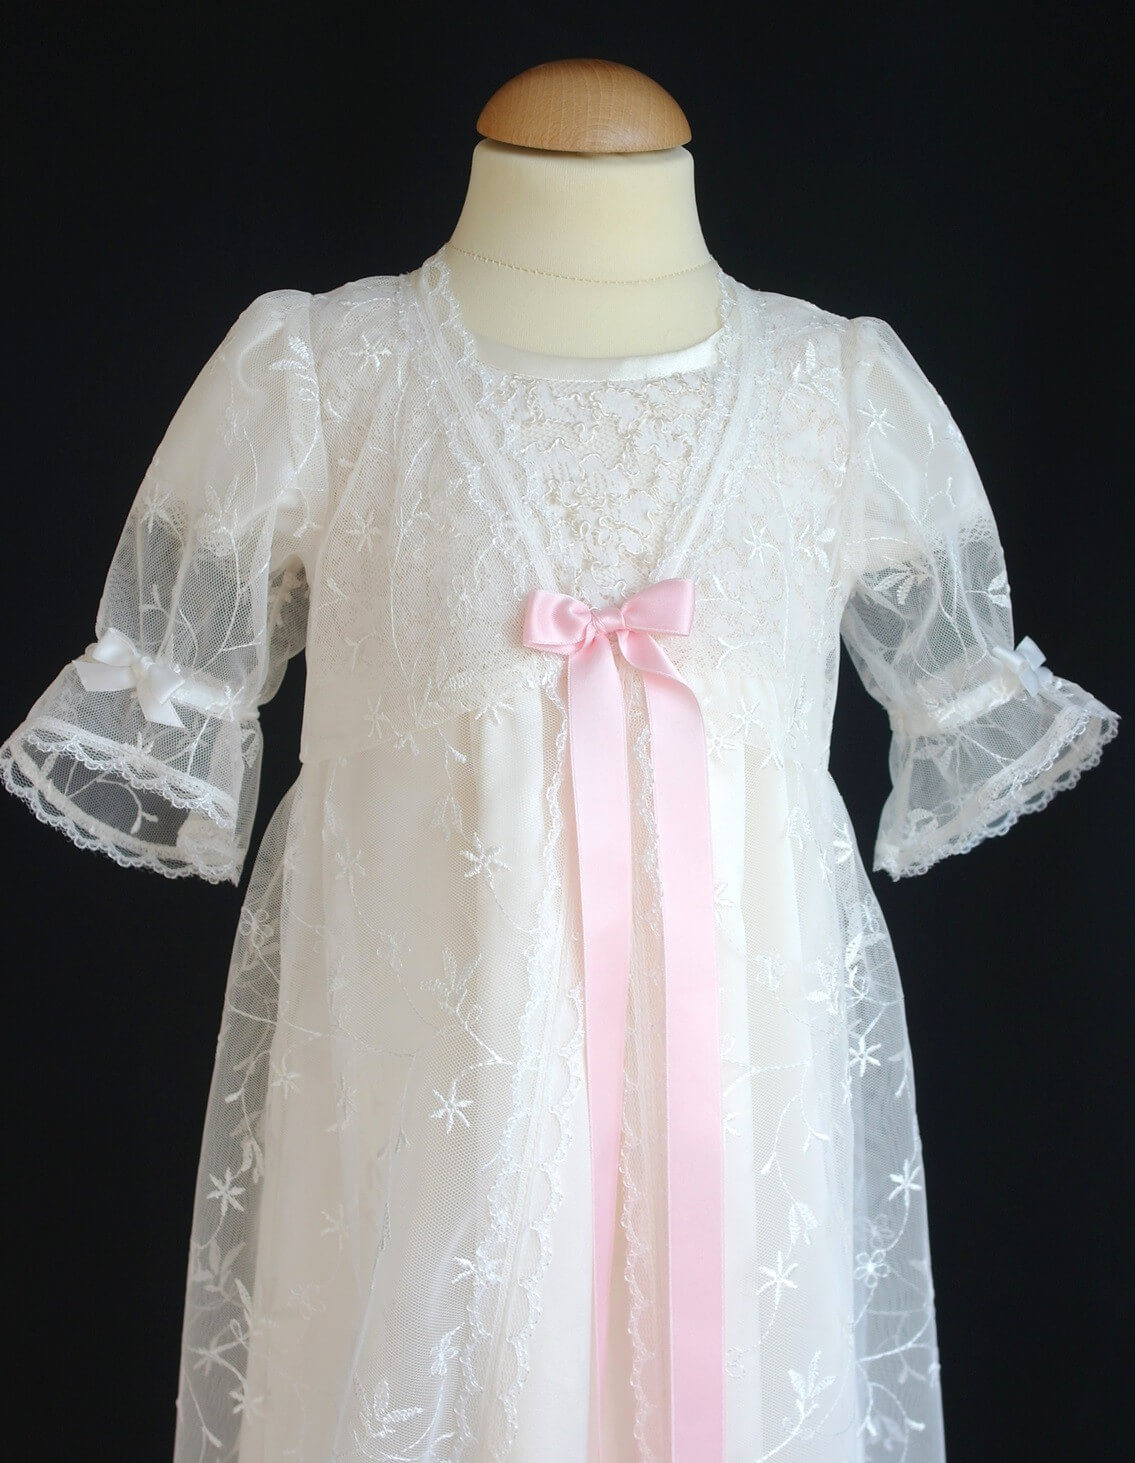 Christening gown - Lace-Over Dress